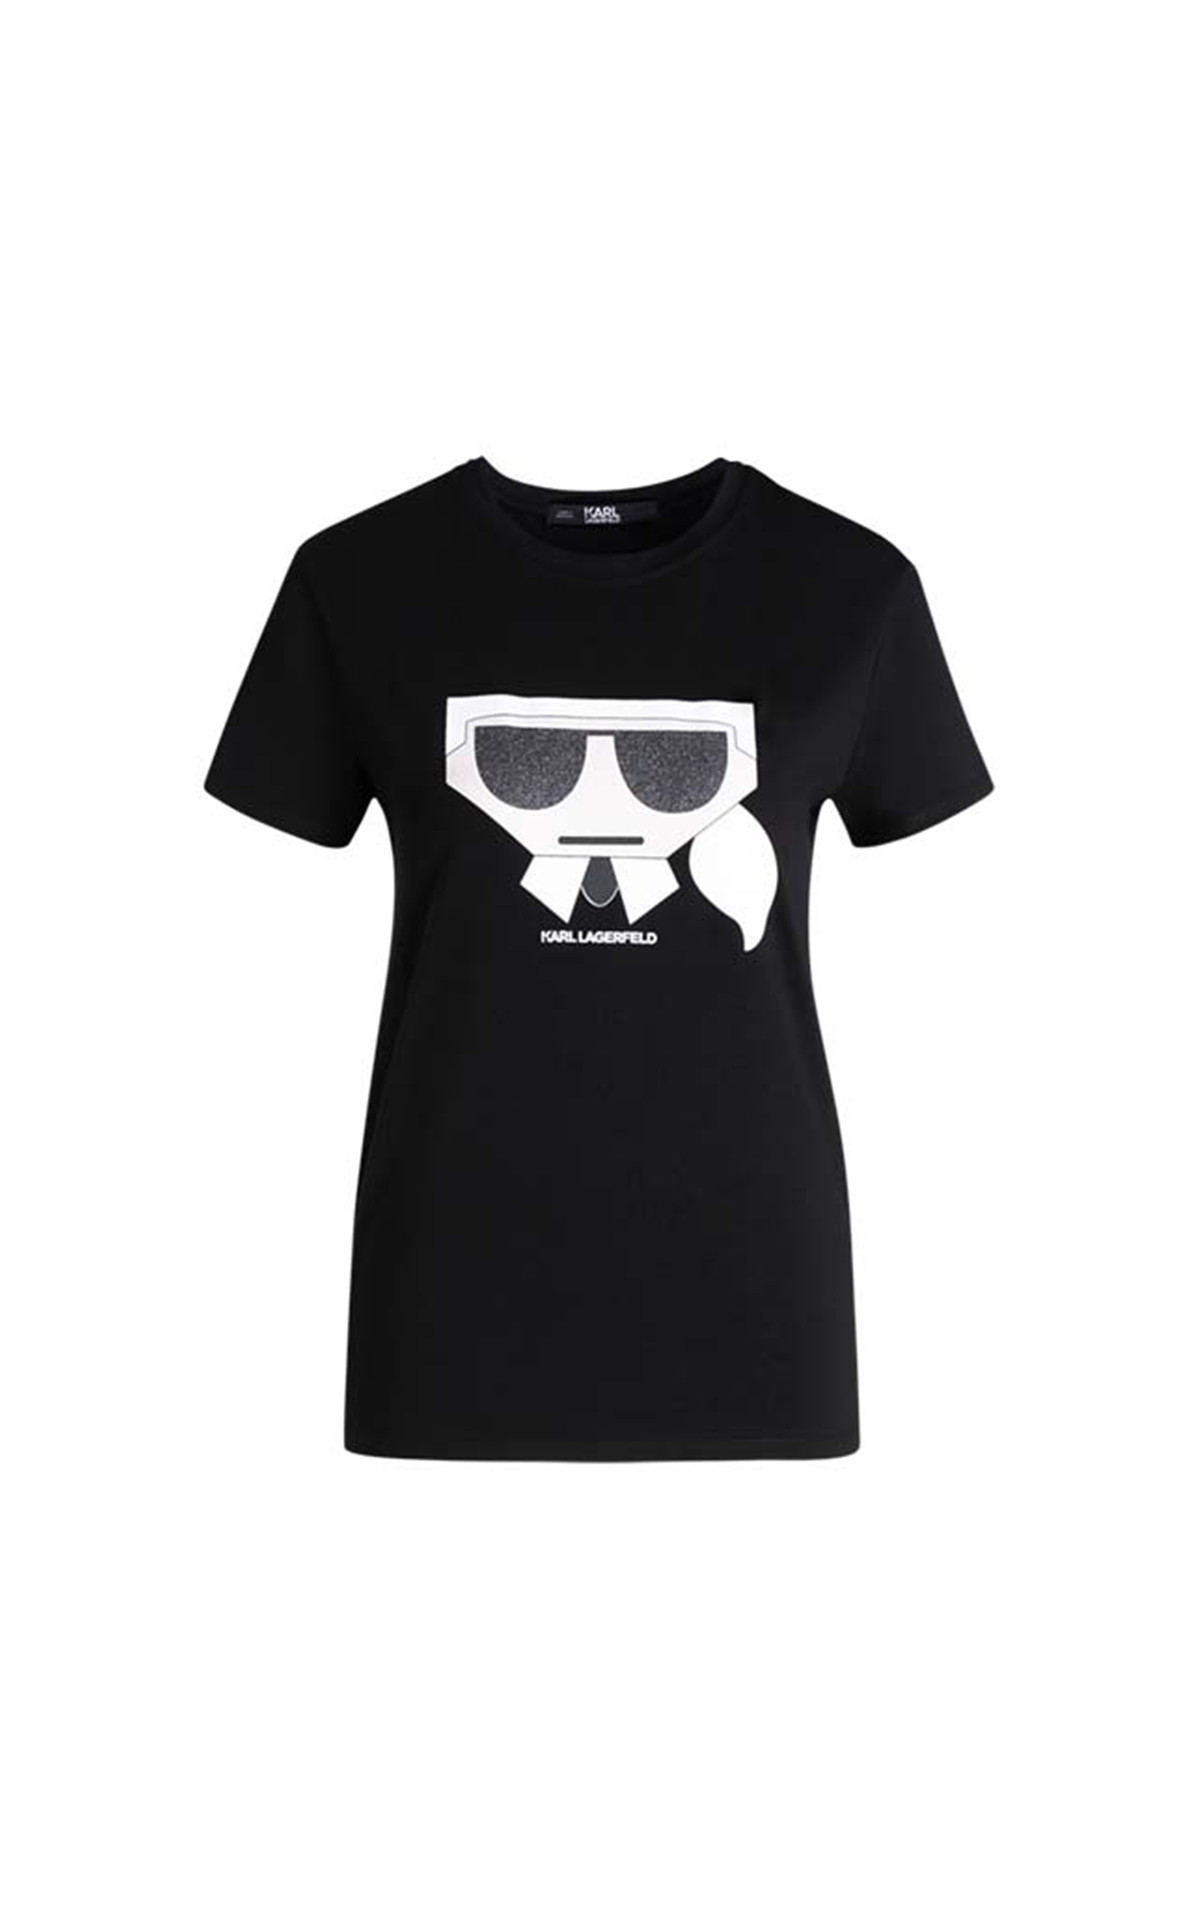 Karl Lagerfeld Kocktail Karl Tshirt at The Bicester Village Shopping Collection